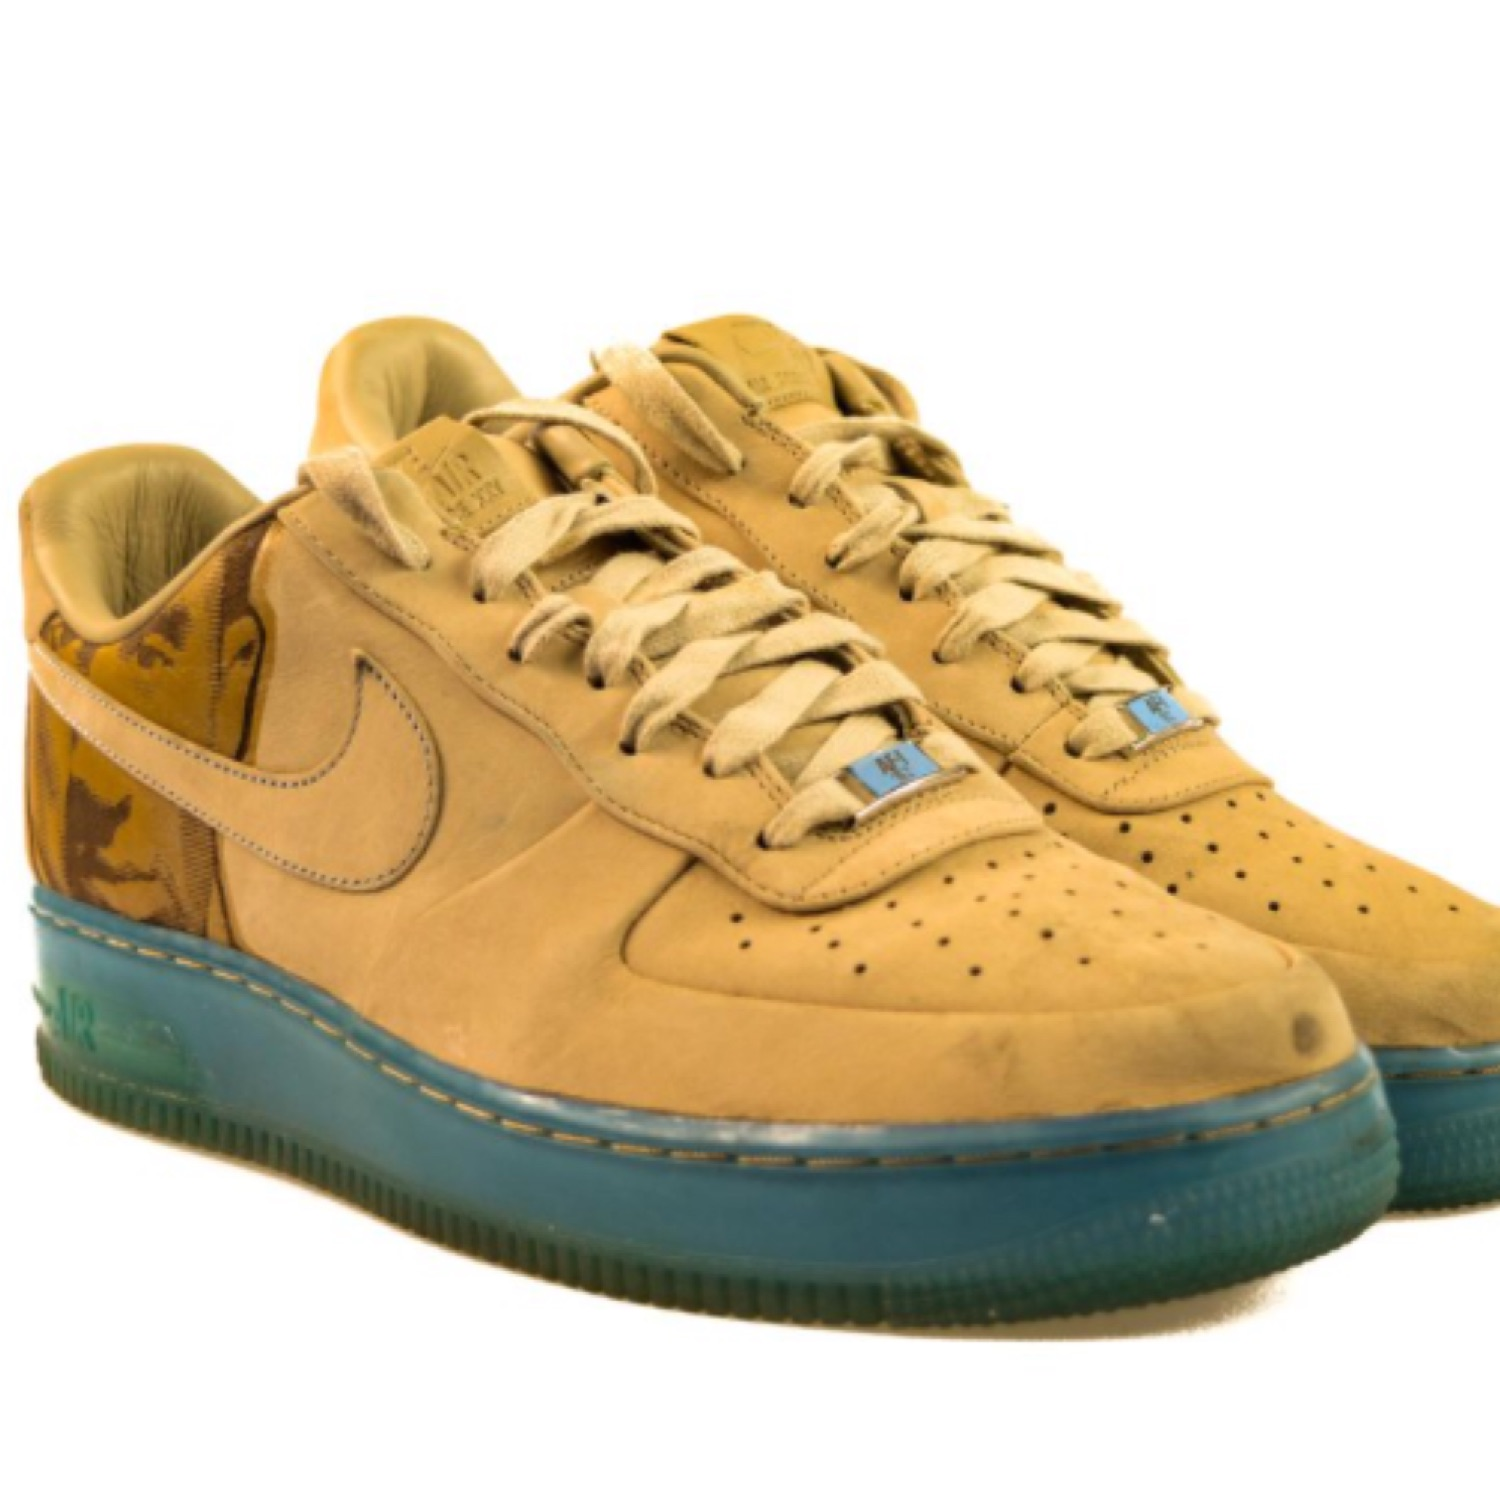 Force Supreme Low '07 1 Air Nike uPkXOZi